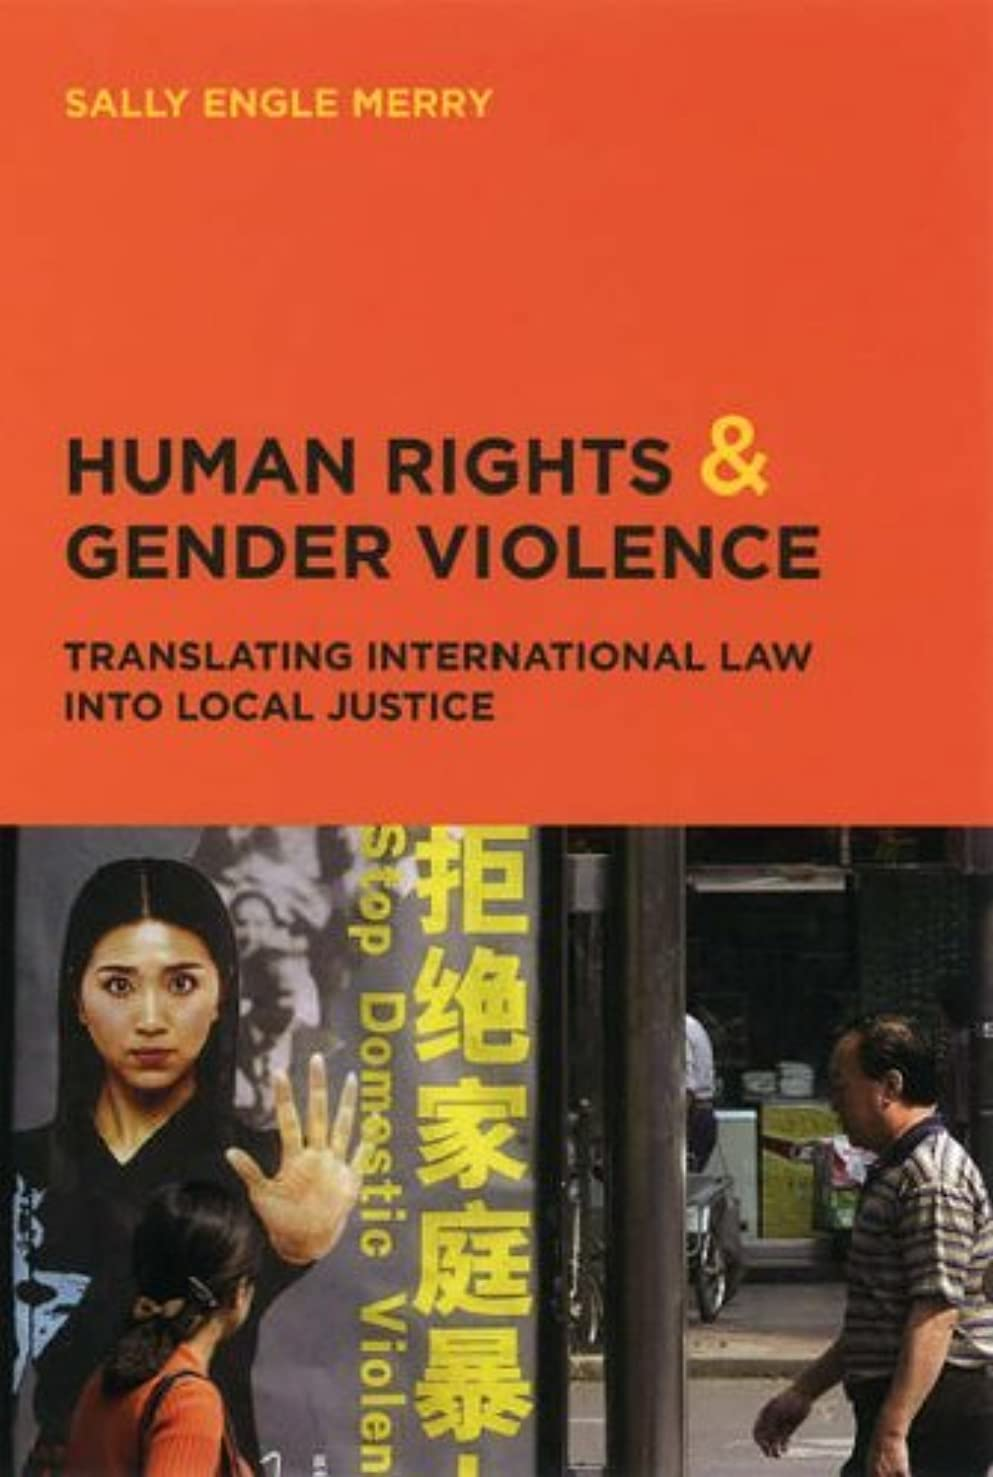 [ Human Rights and Gender Violence: Translating International Law Into Local Justice[ HUMAN RIGHTS AND GENDER VIOLENCE: TRANSLATING INTERNATIONAL LAW INTO LOCAL JUSTICE ] By Merry, Sally Engle ( Author )Dec-15-2005 Paperback